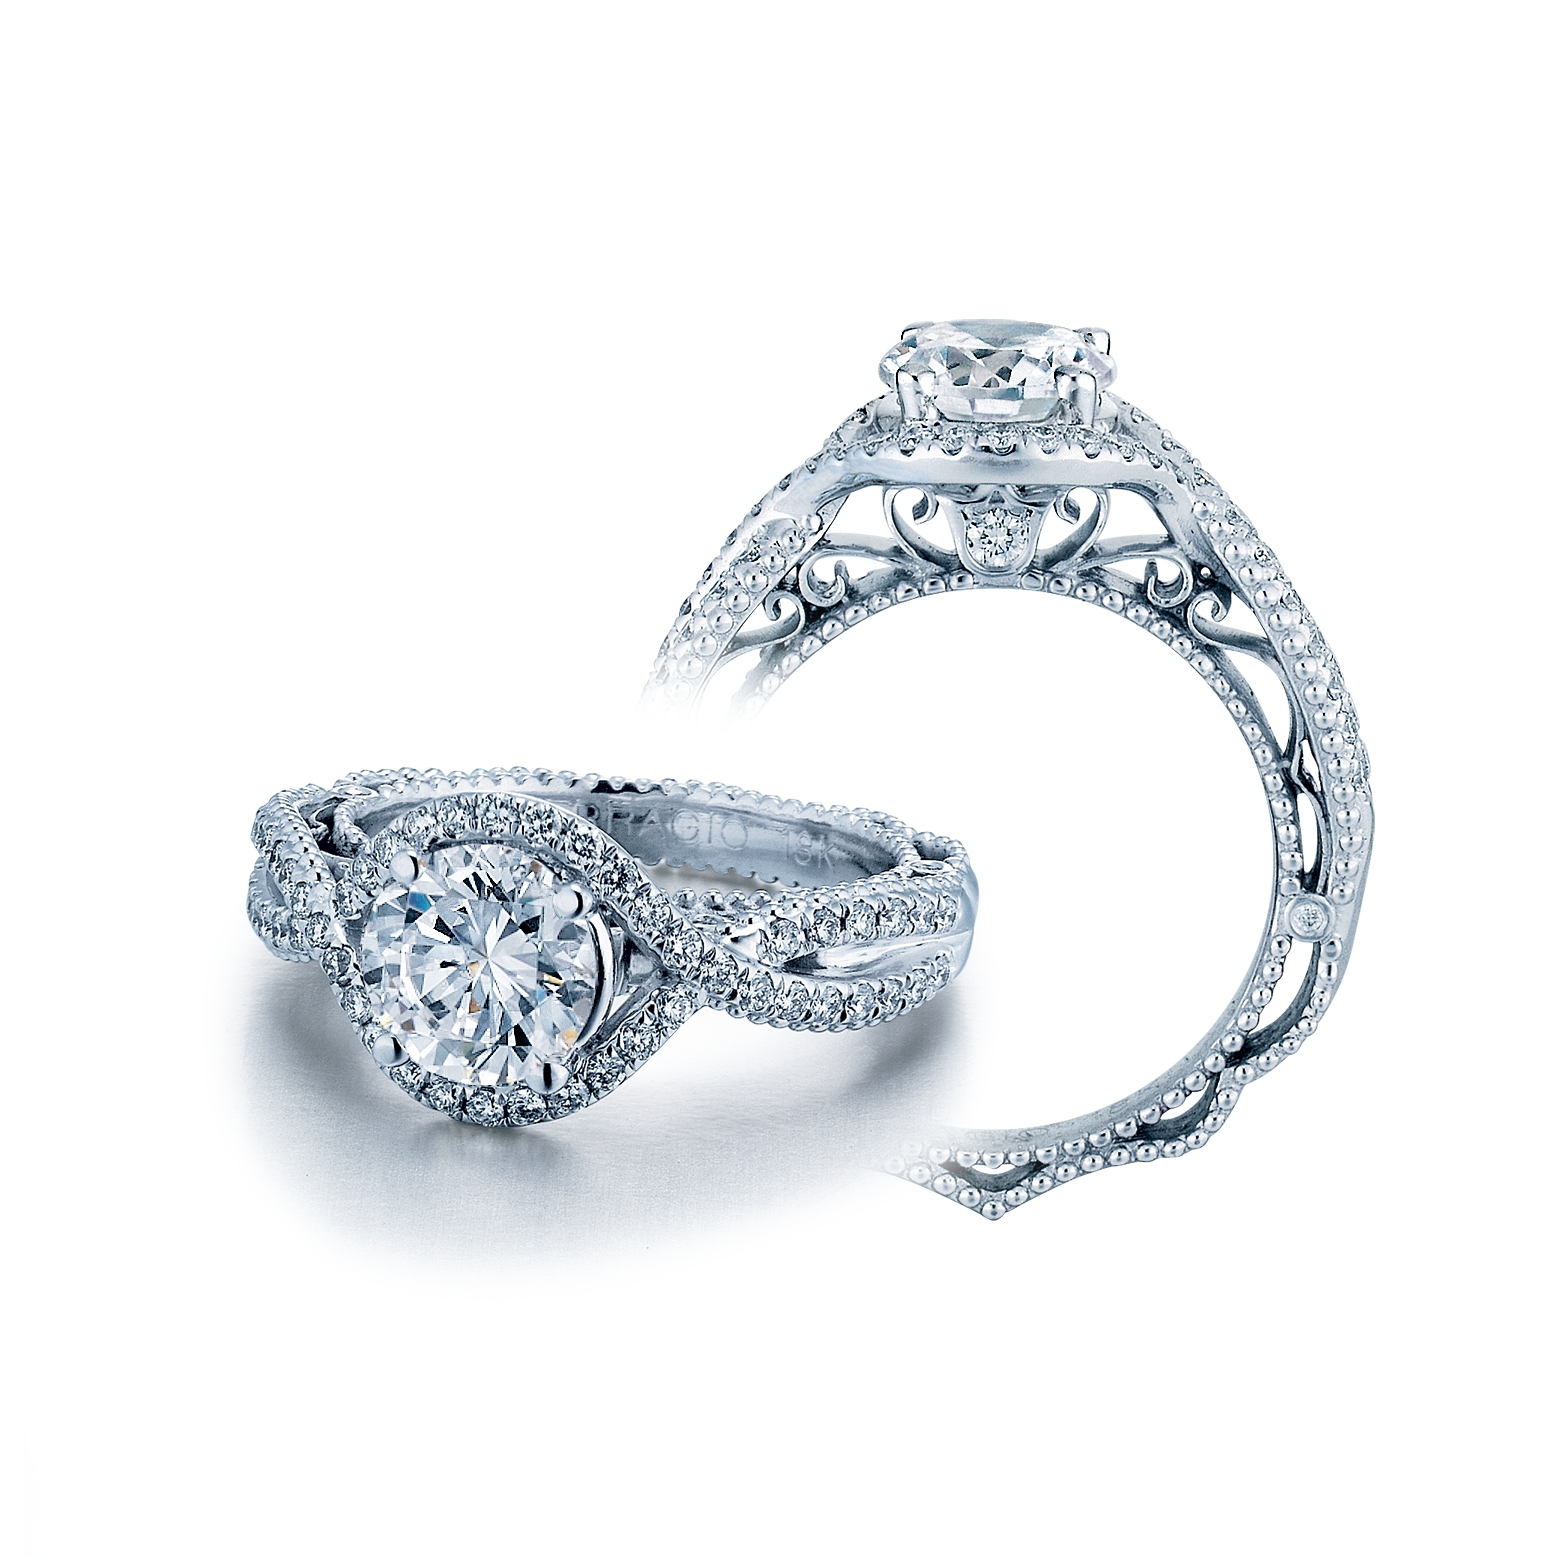 verragio debuts new look of designer engagement ring and wedding